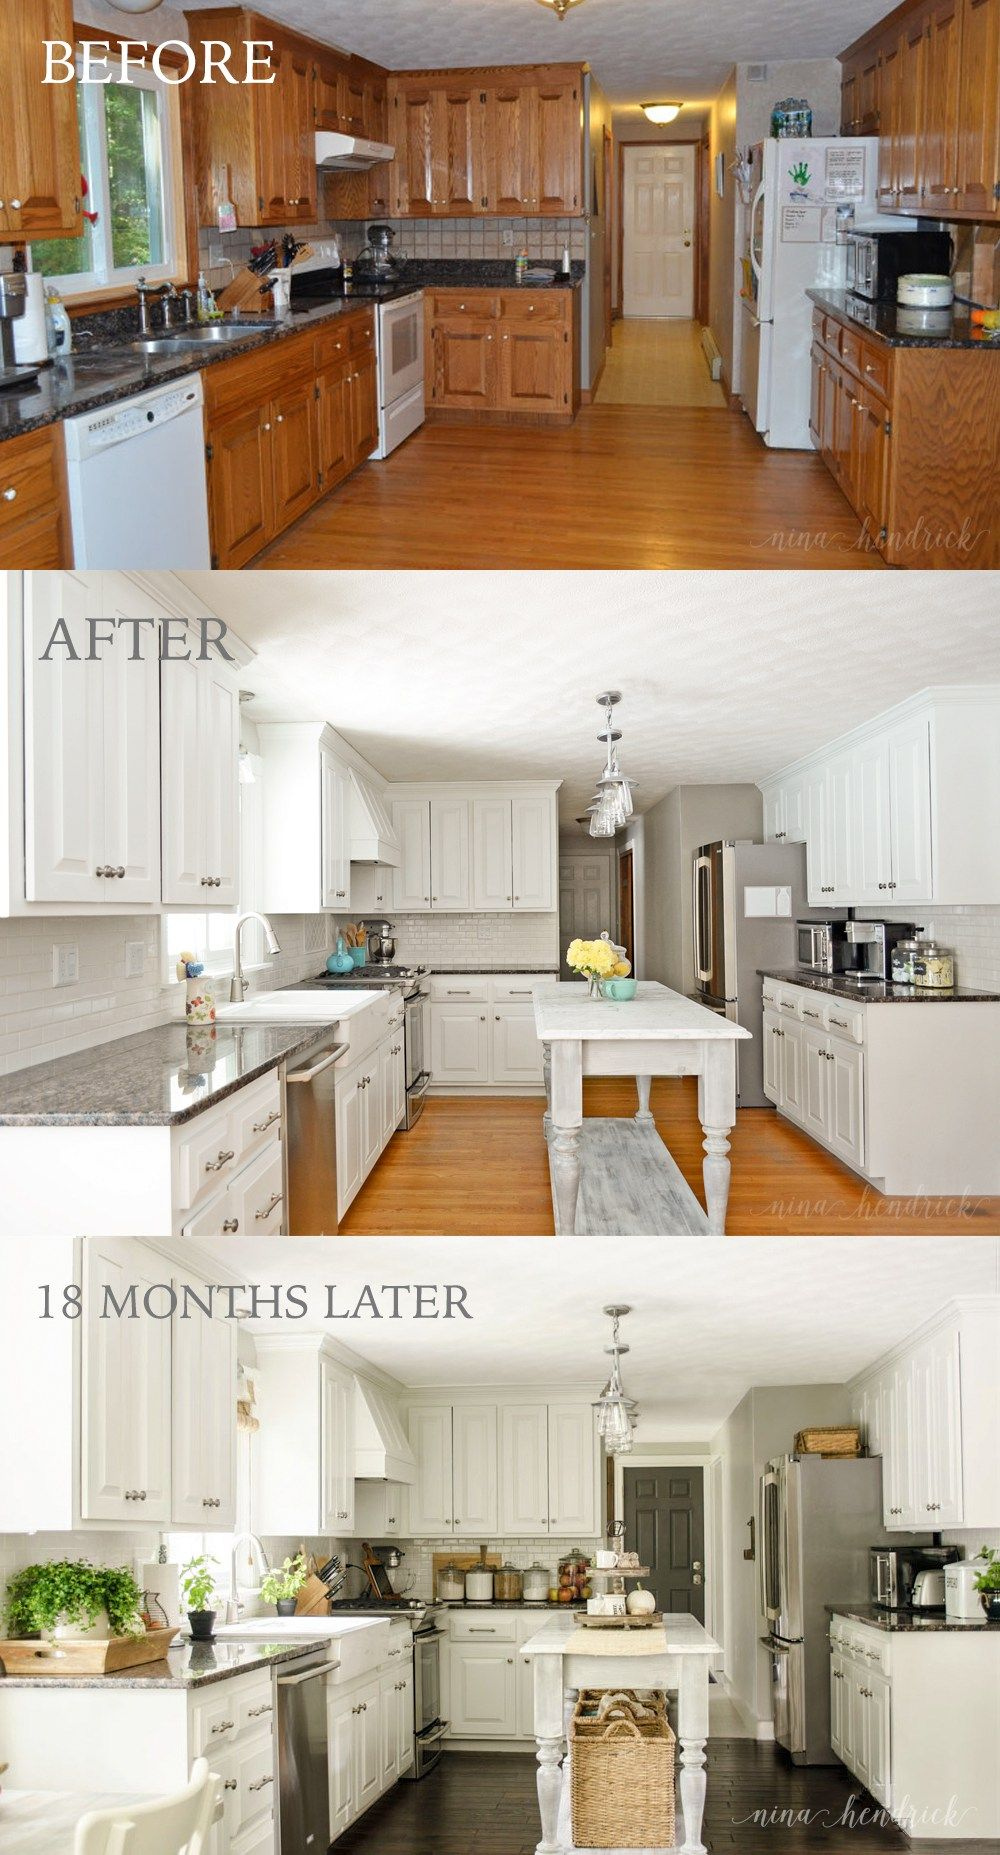 How To Paint Oak Cabinets And Hide The Grain Kitchen Cabinets Makeover Home Renovation Kitchen Renovation